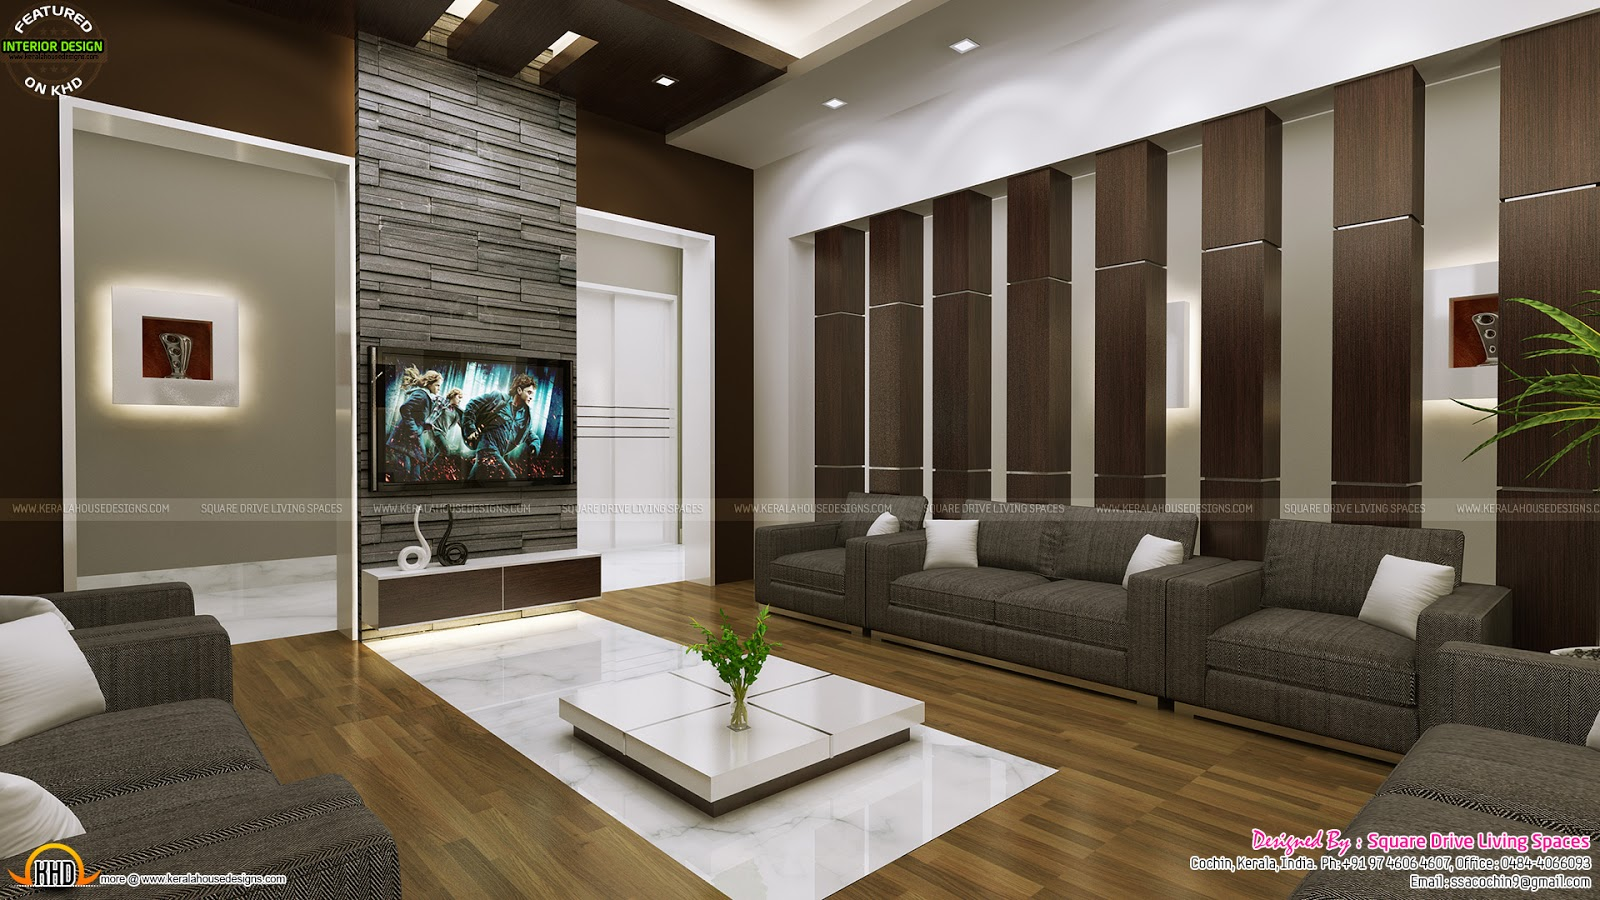 Attractive home interior ideas kerala home design and for Room design and layout